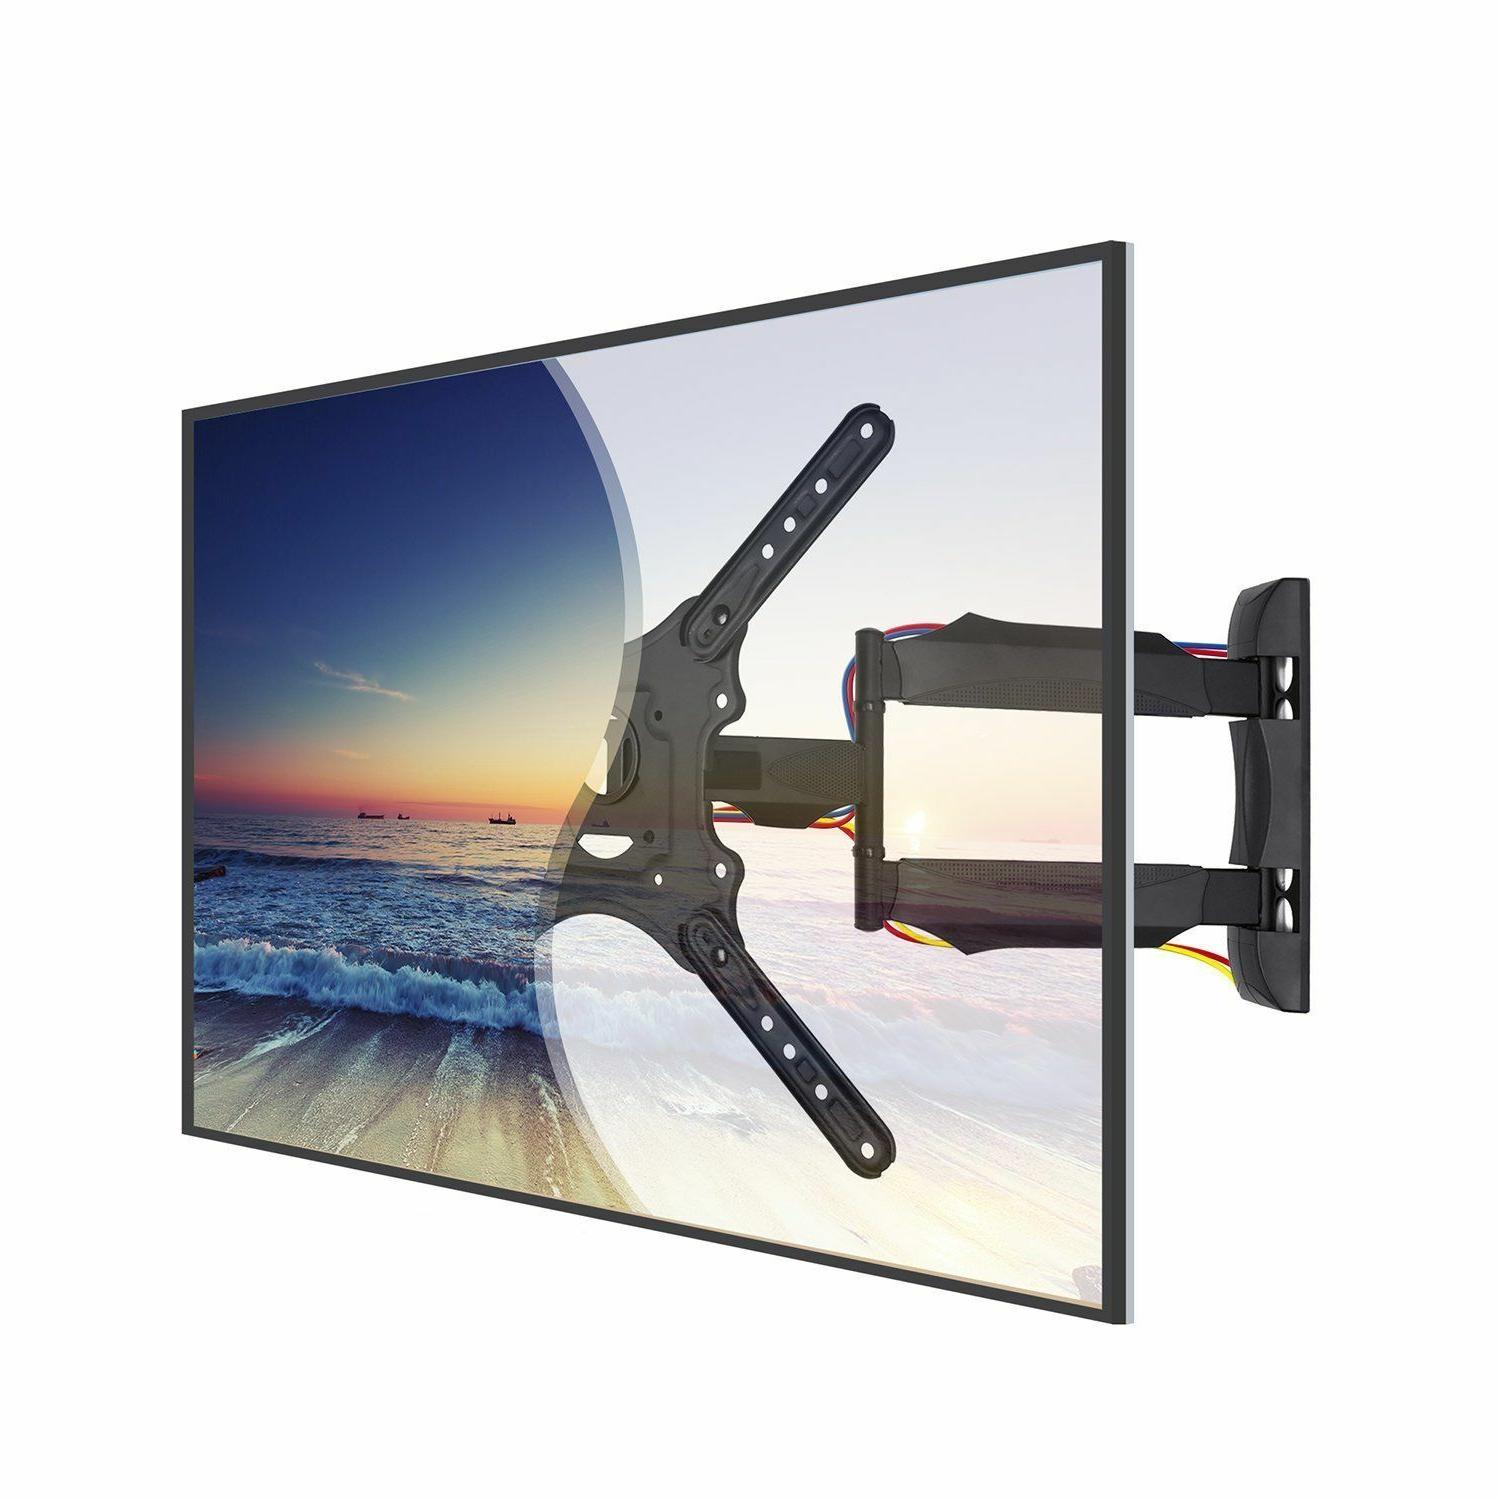 Wall Mount Television Wall Bracket Fit For 26-55 inch LED LC